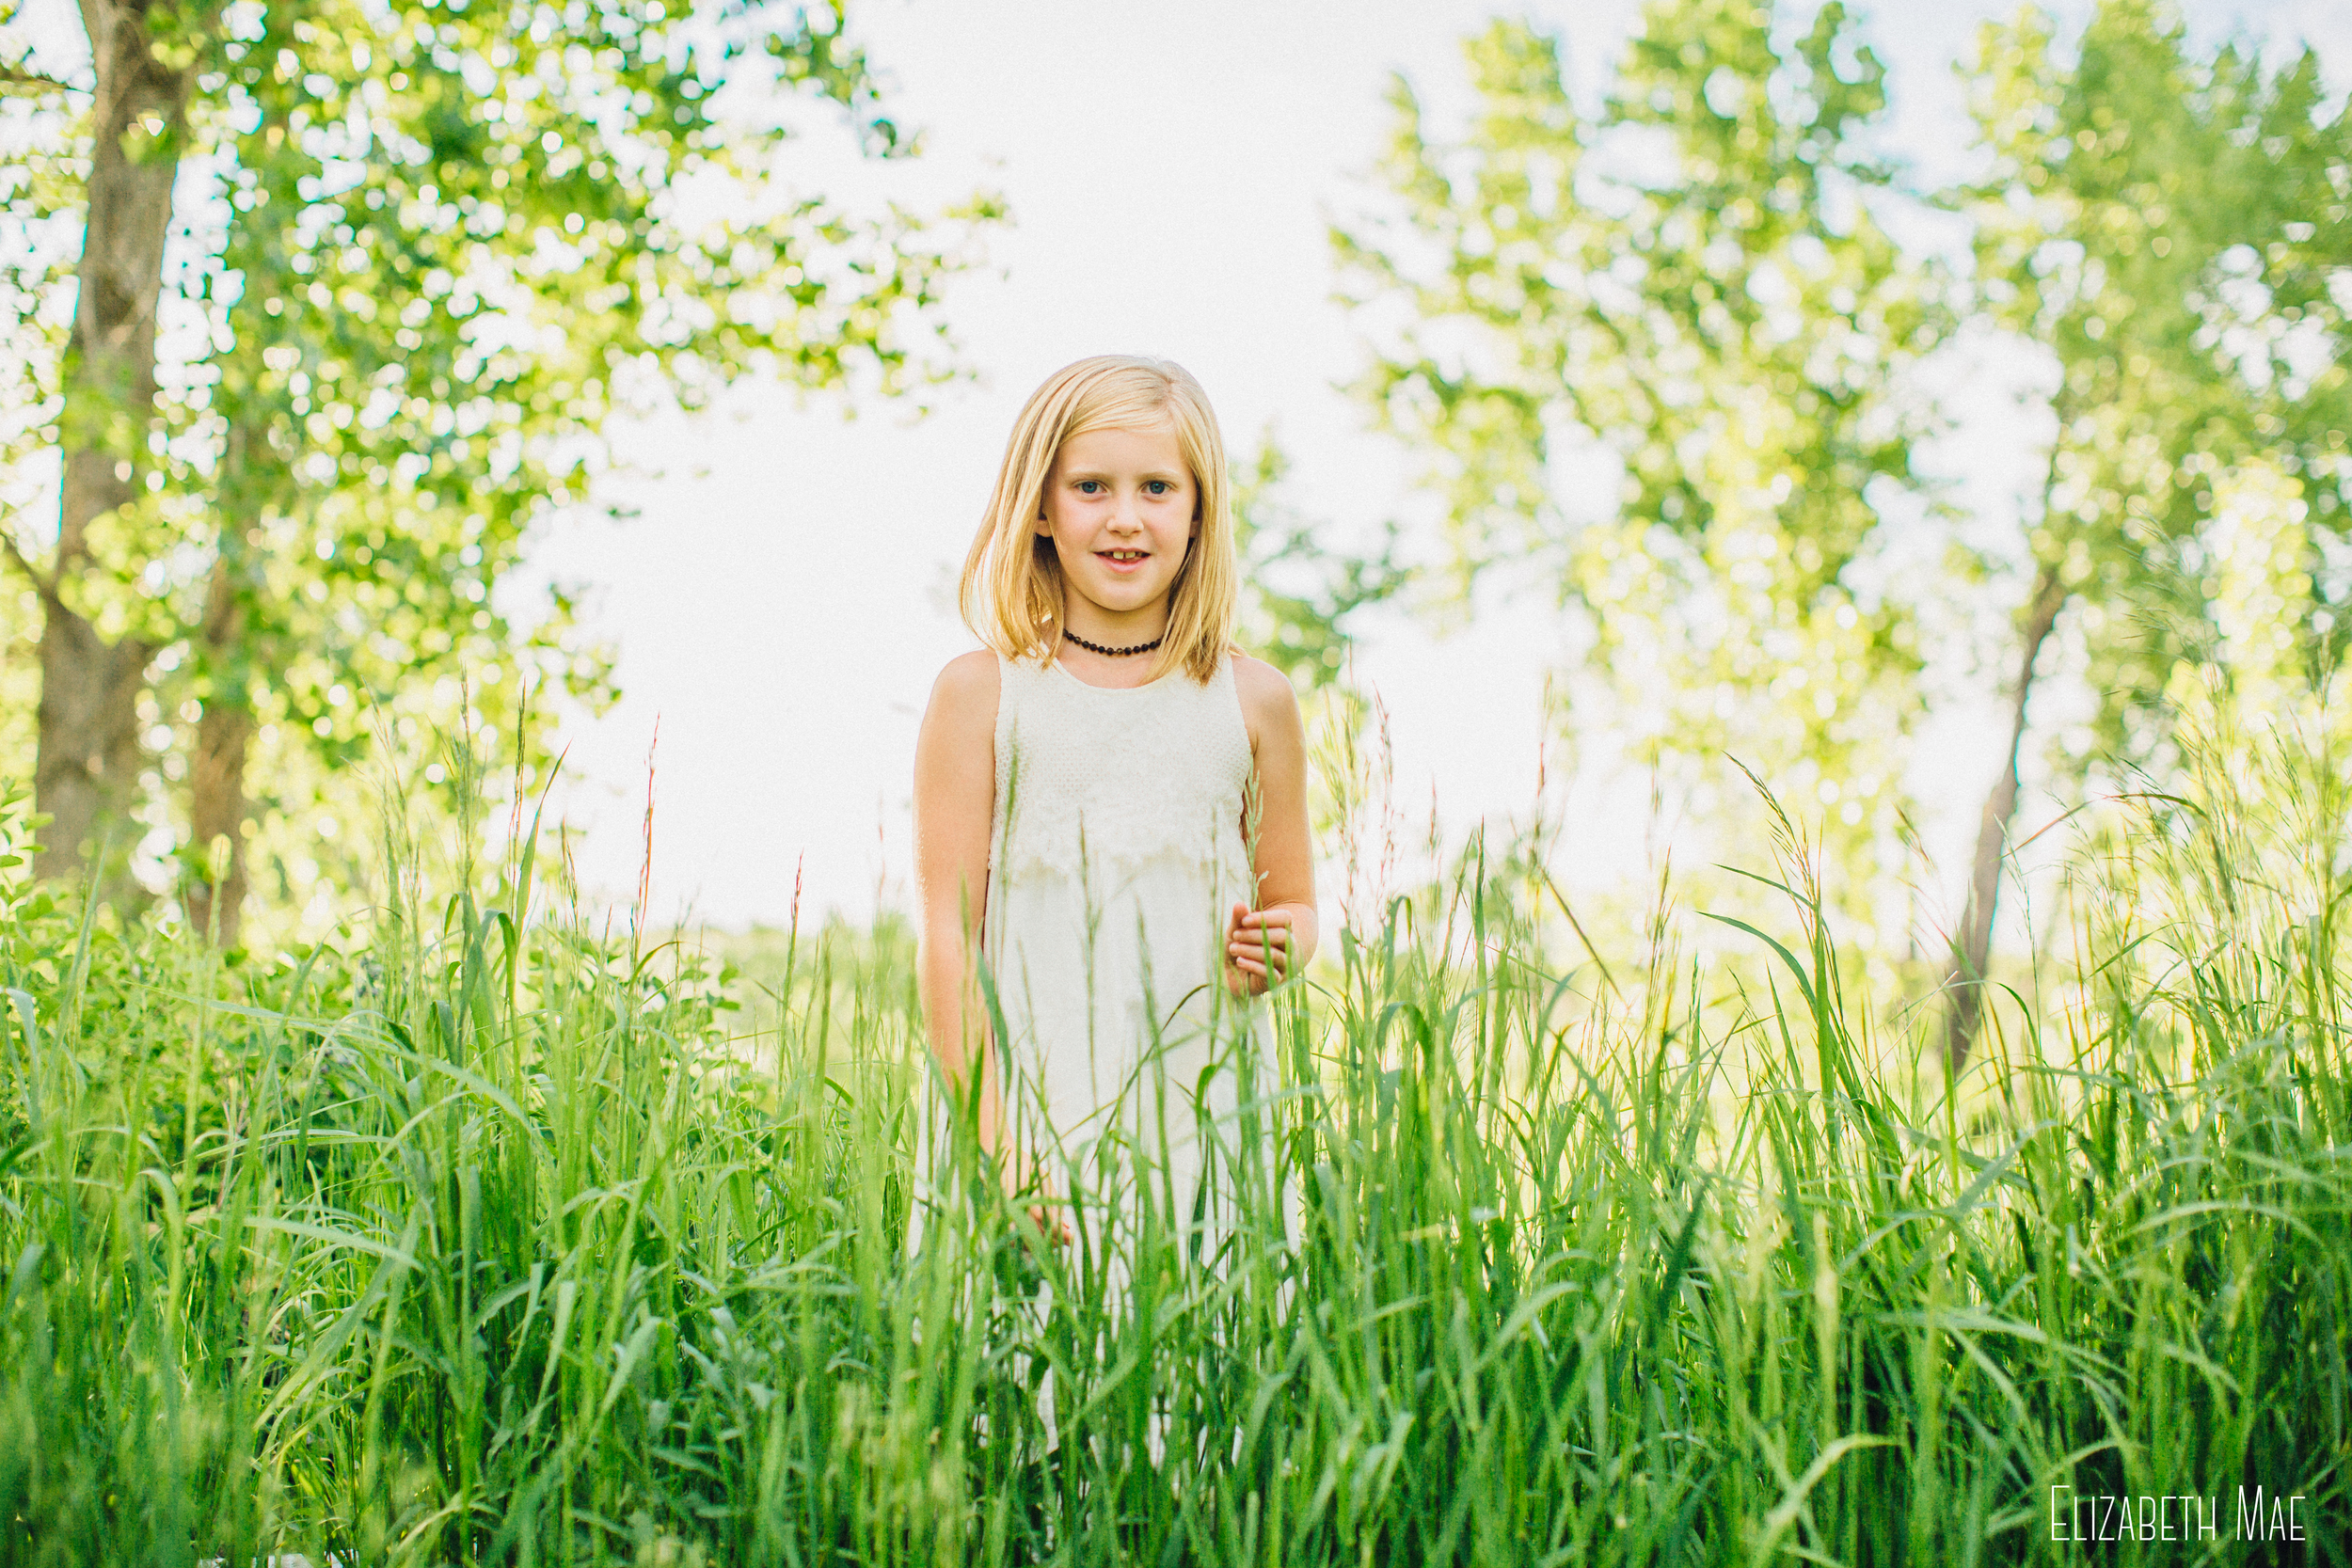 Girl in grass field